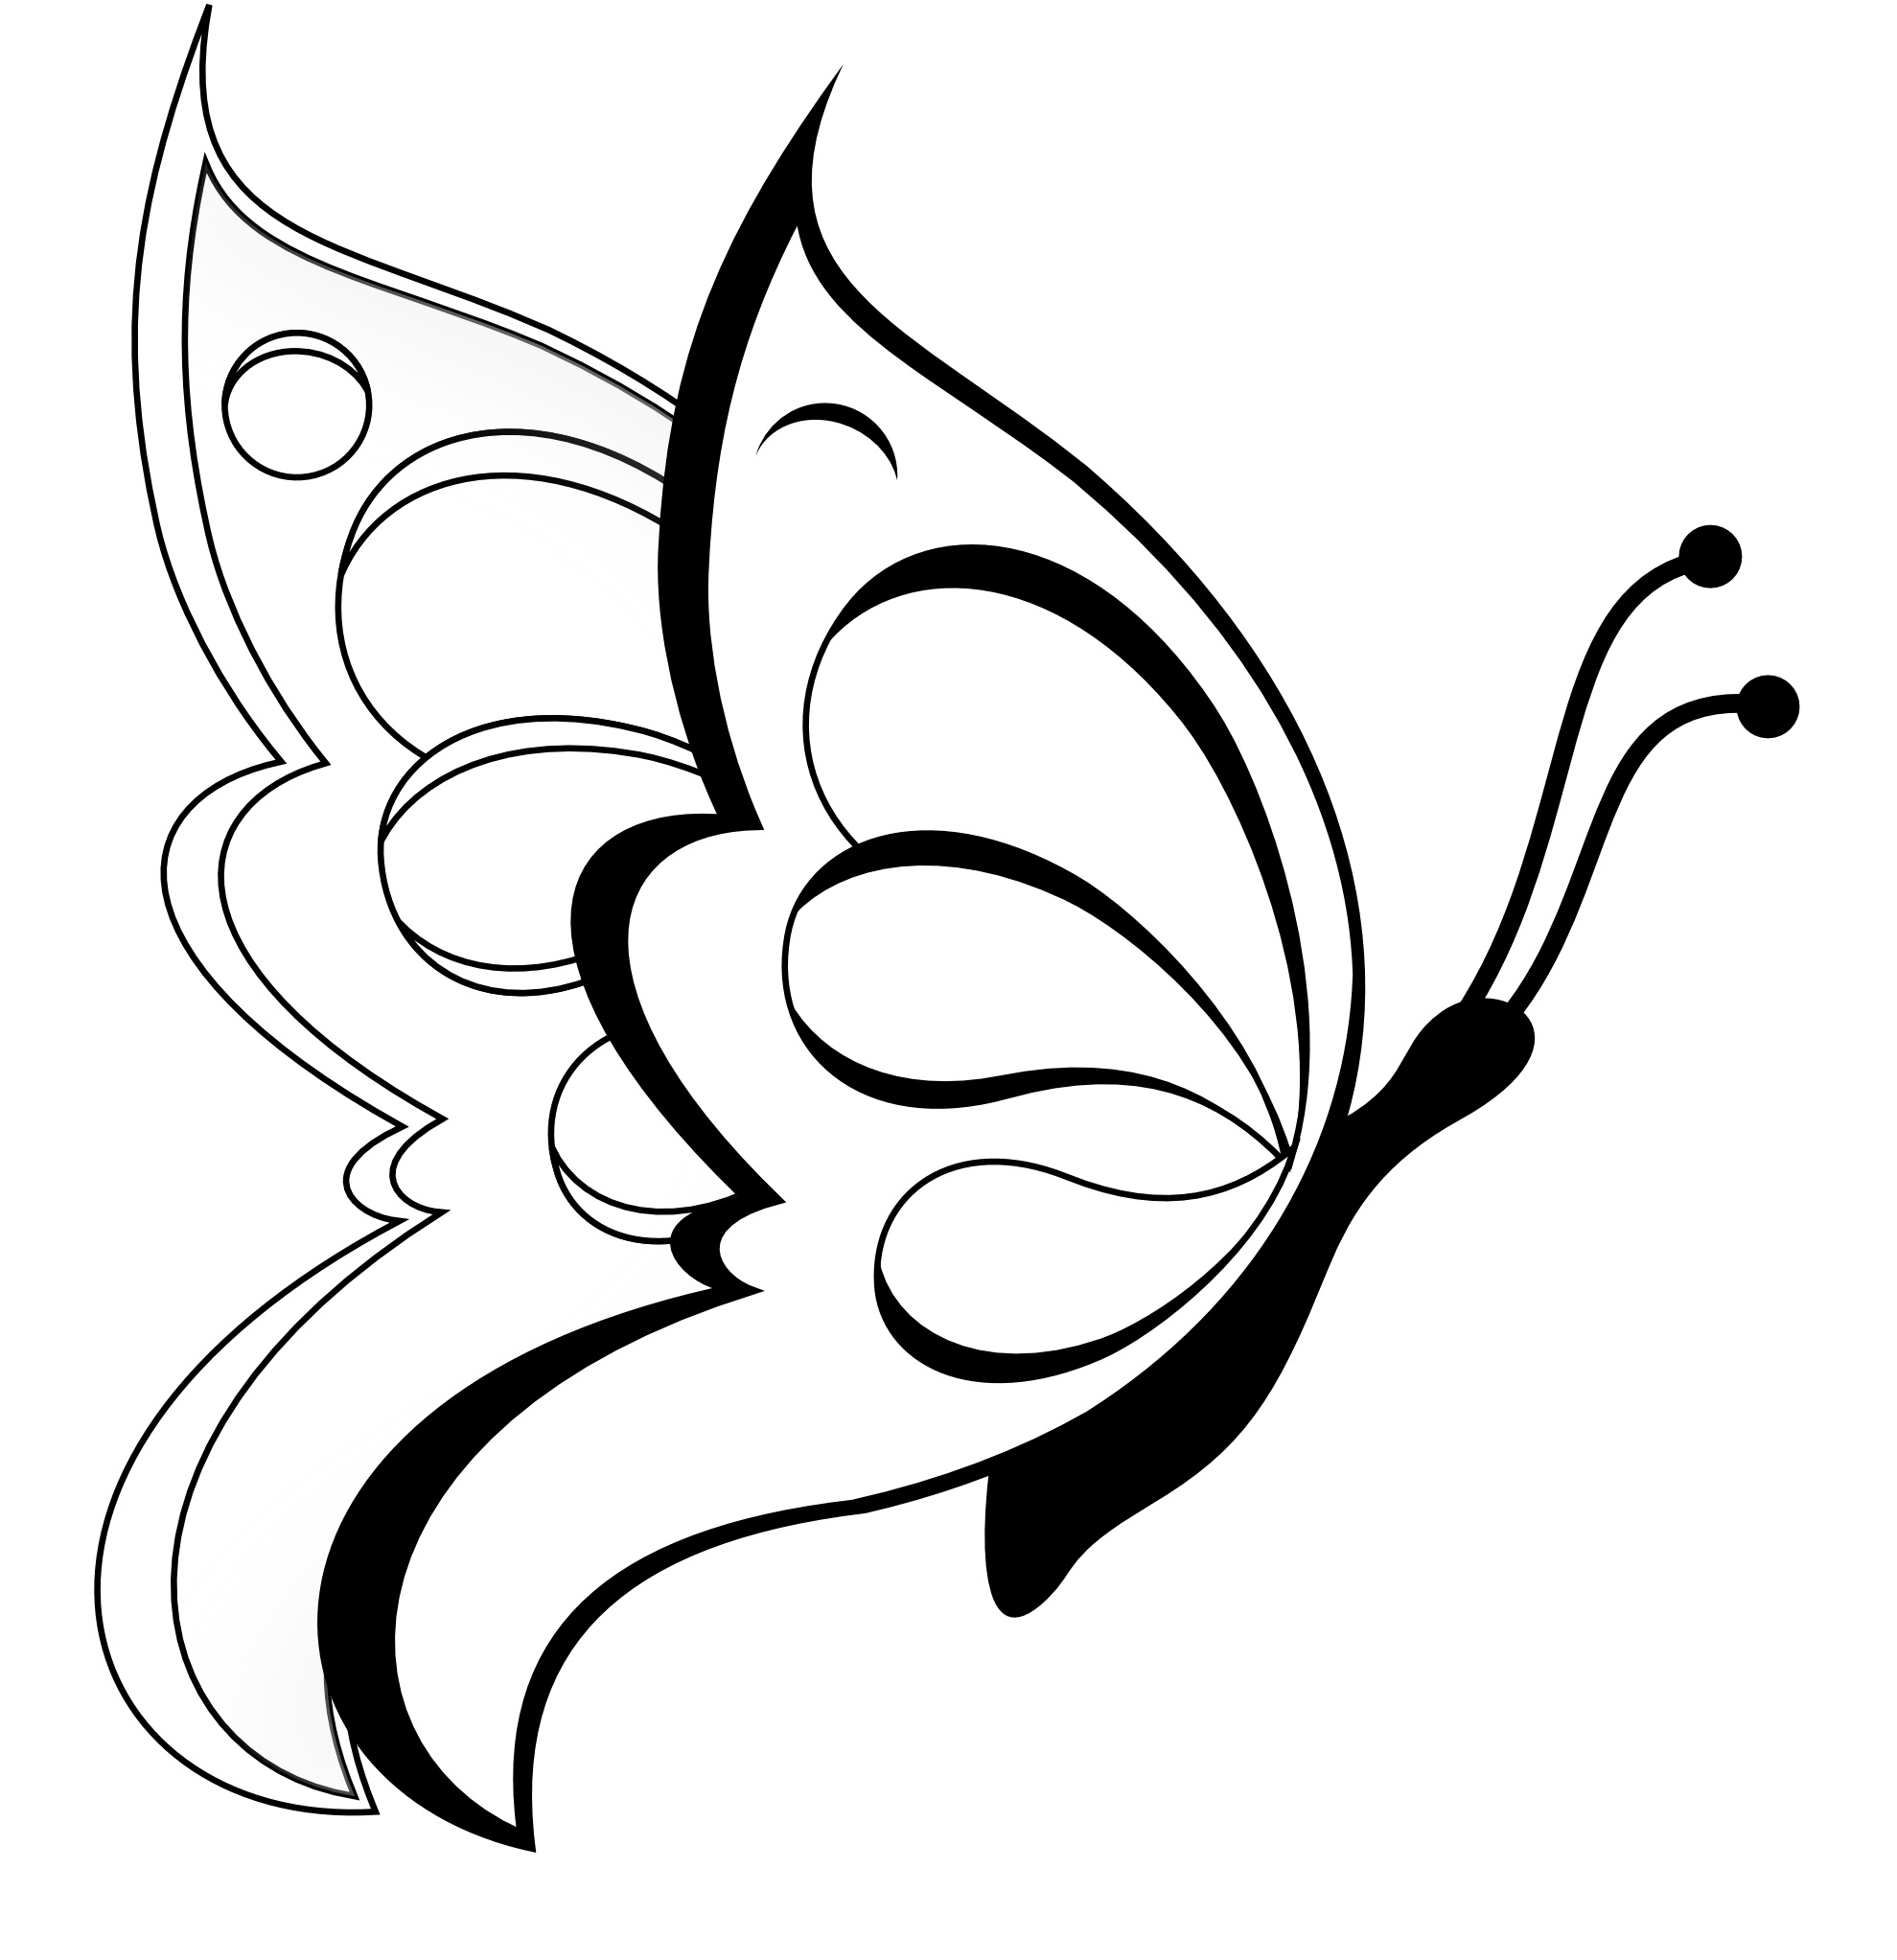 butterfly coloring pages free printable coloring pages butterfly free printable coloring pages pages butterfly coloring printable free